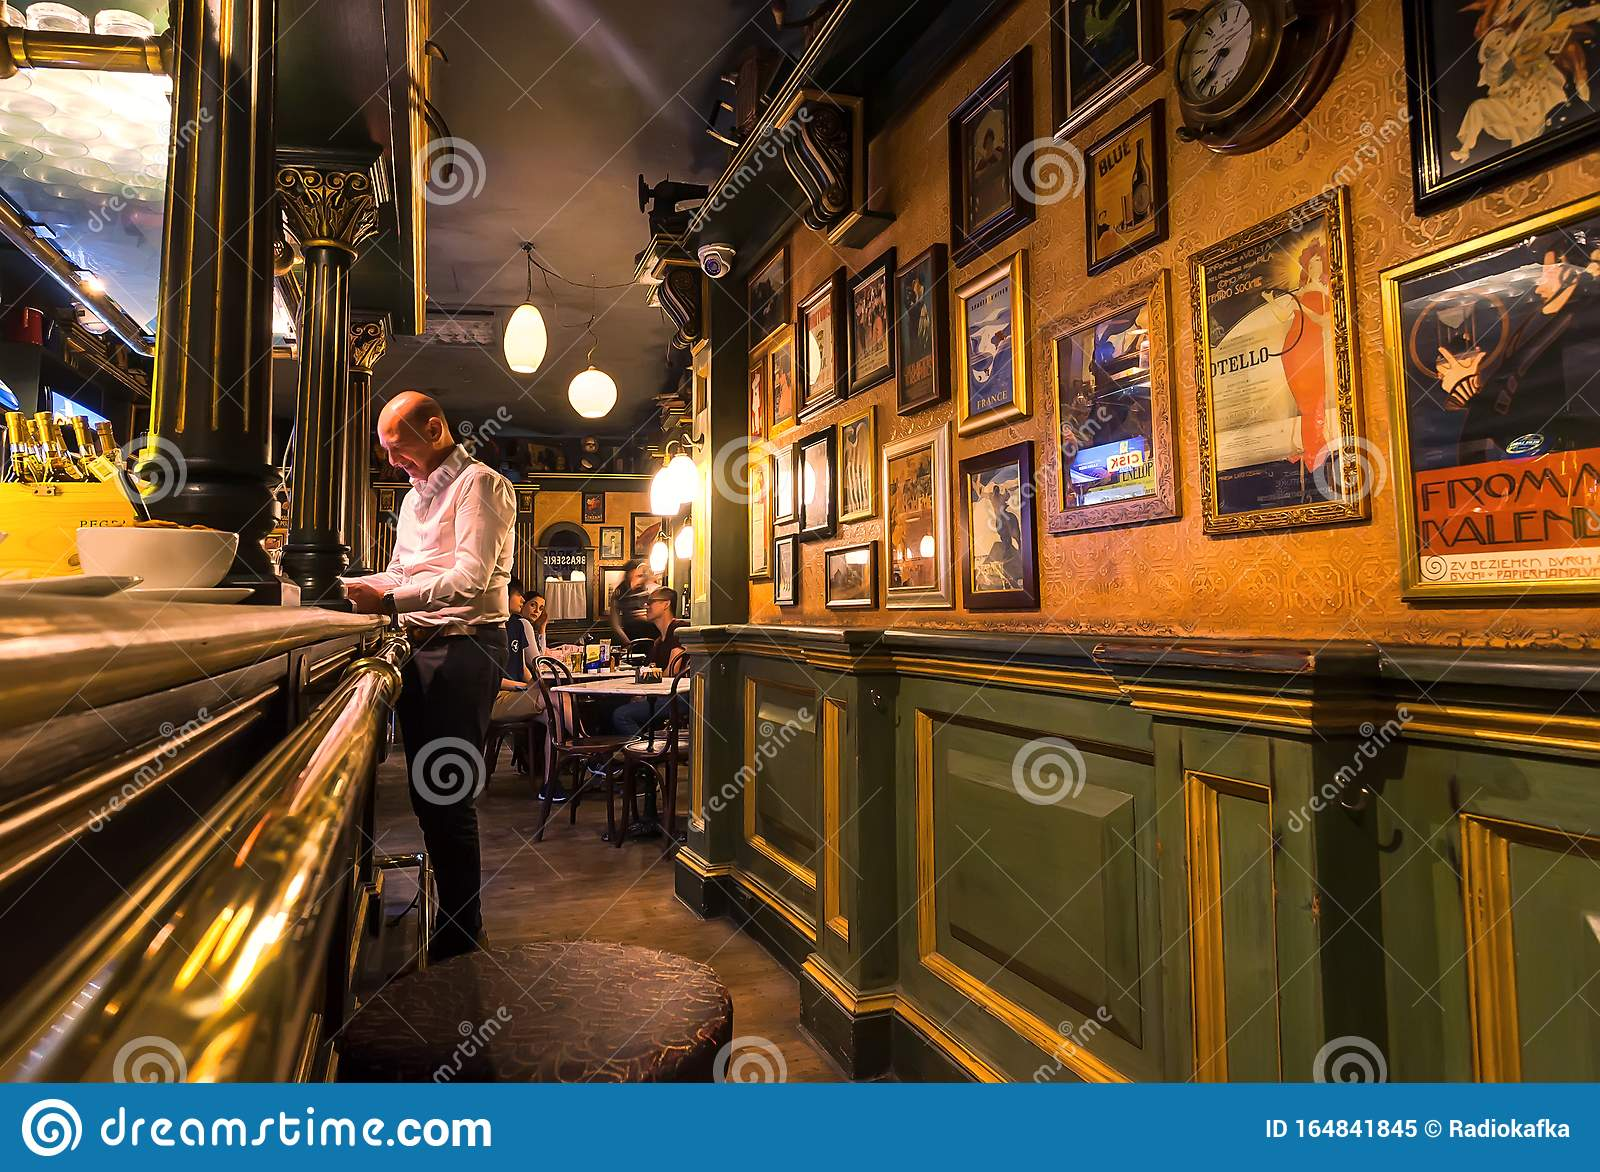 Customer Making An Order At Bar Counter Small Restaurant With Vintage Interior Old Paintings And Posters Editorial Image Image Of Food Europe 164841845